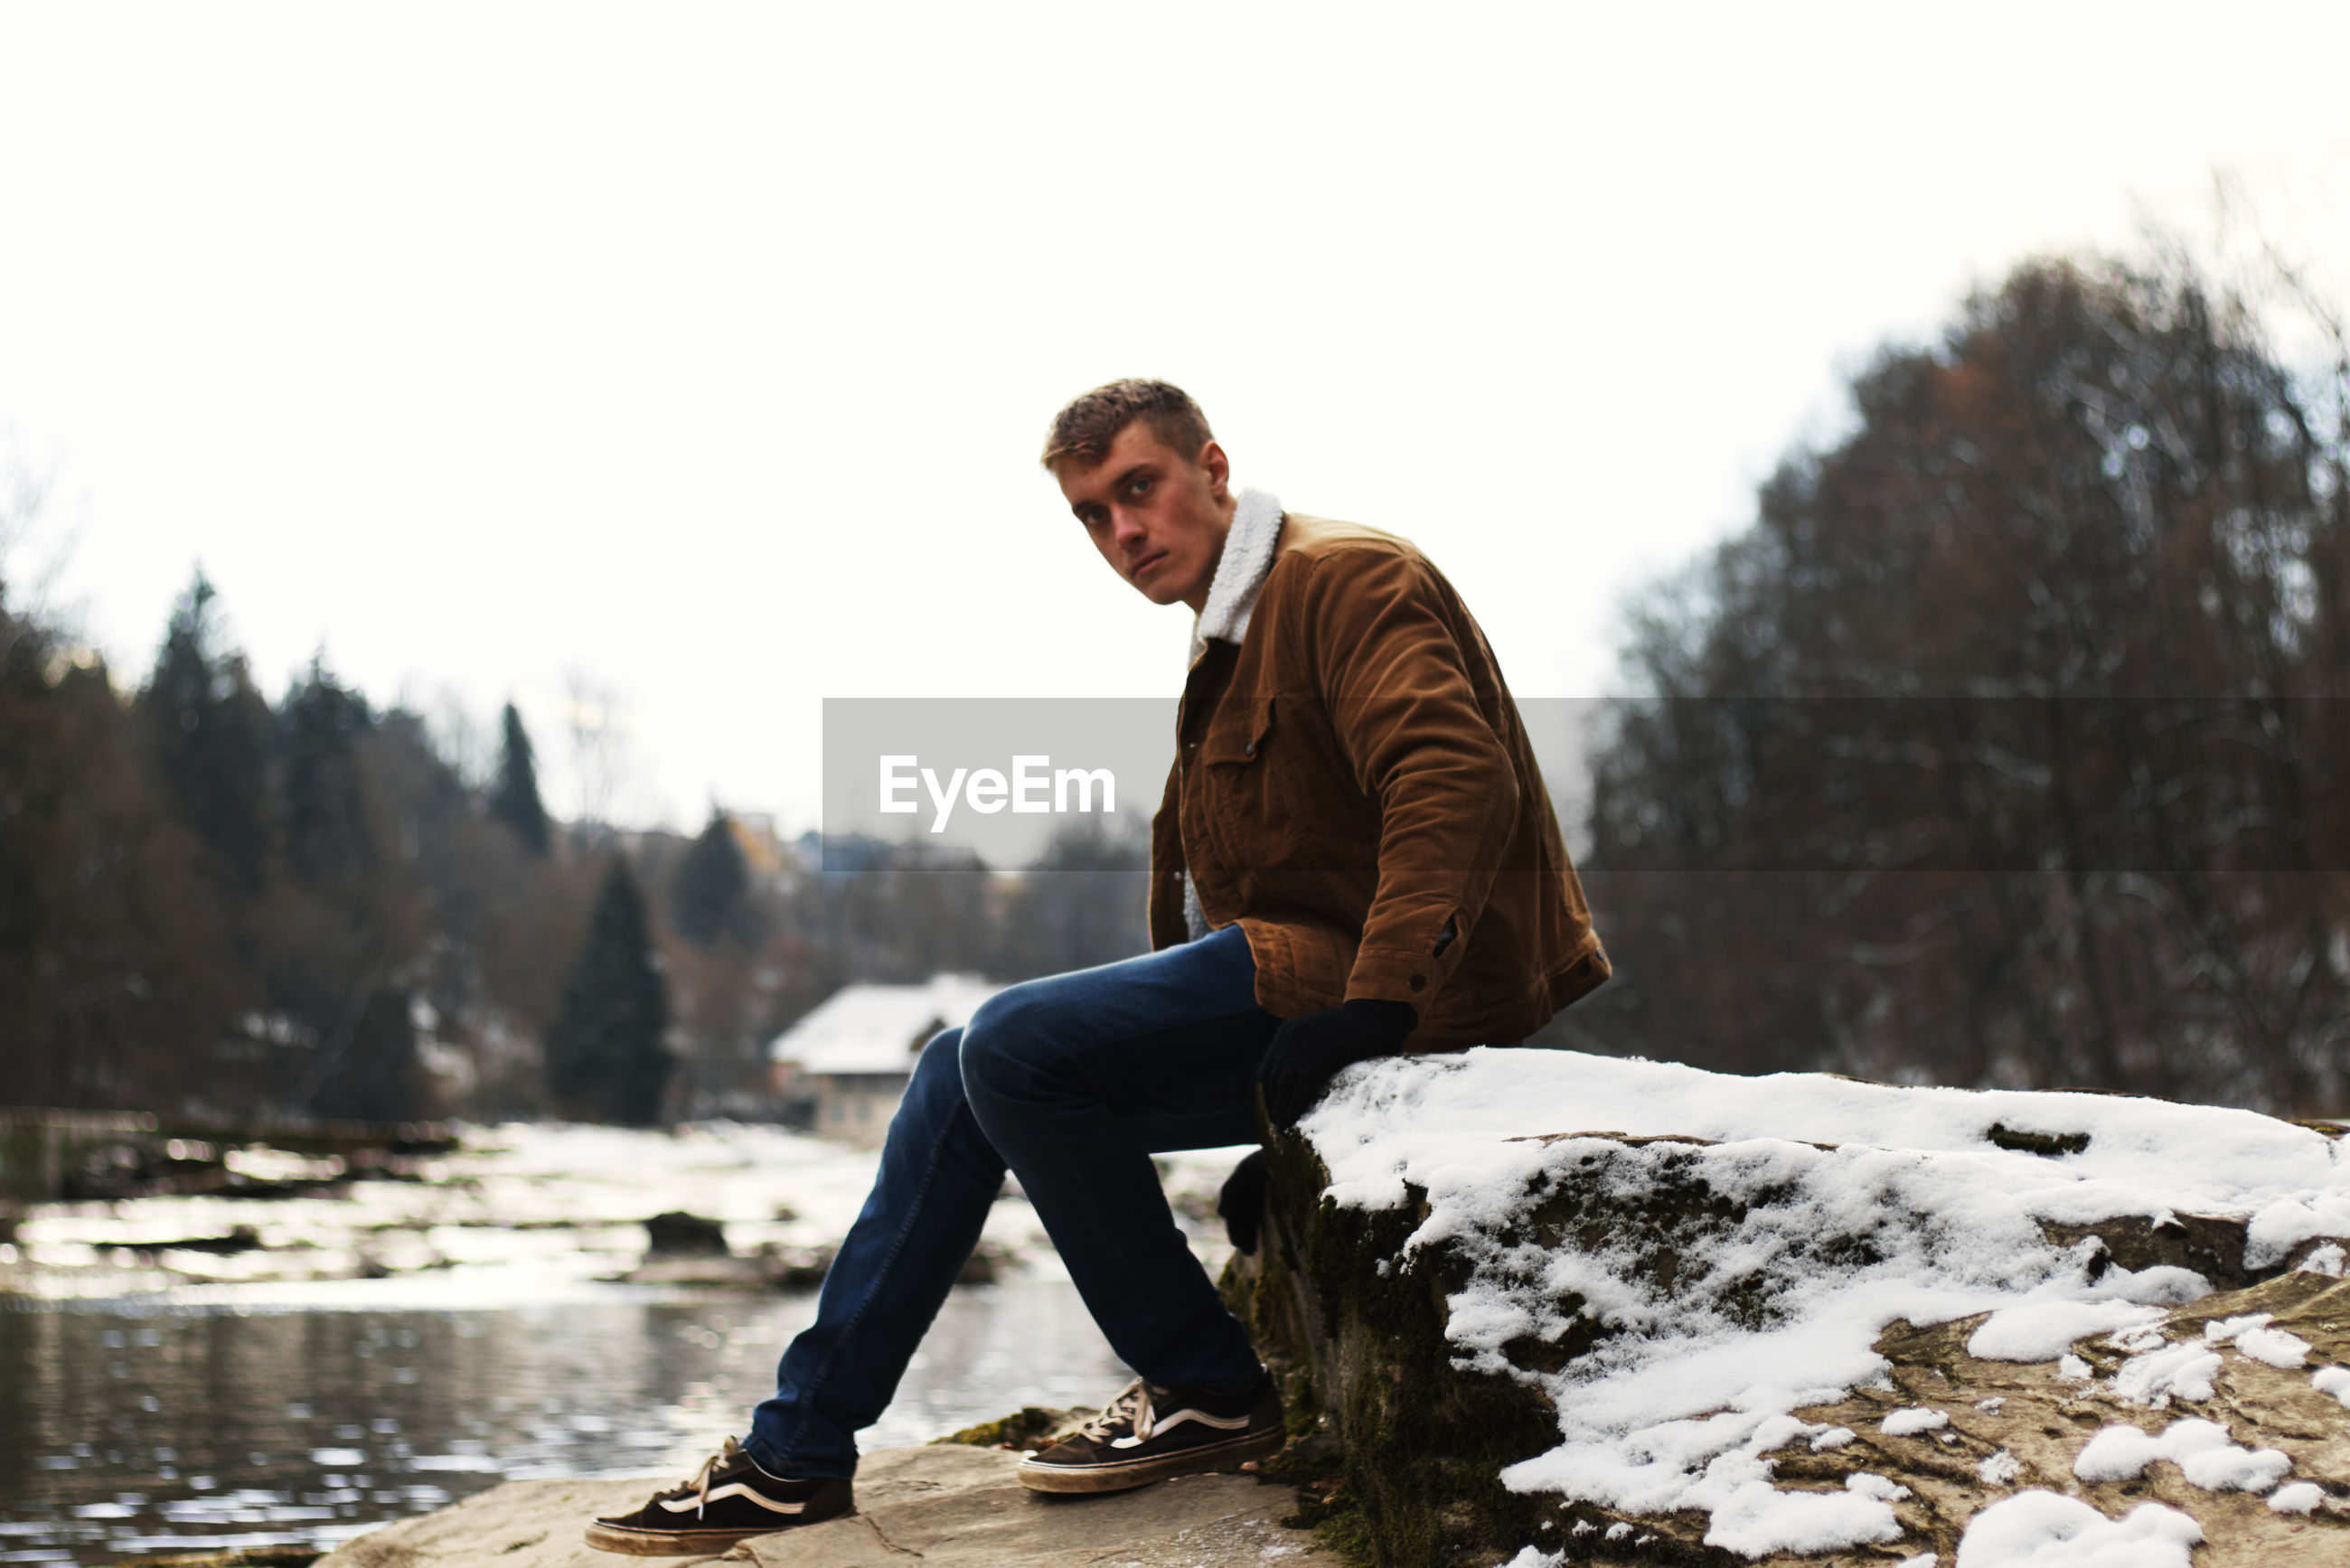 Portrait young man sitting on snow against trees